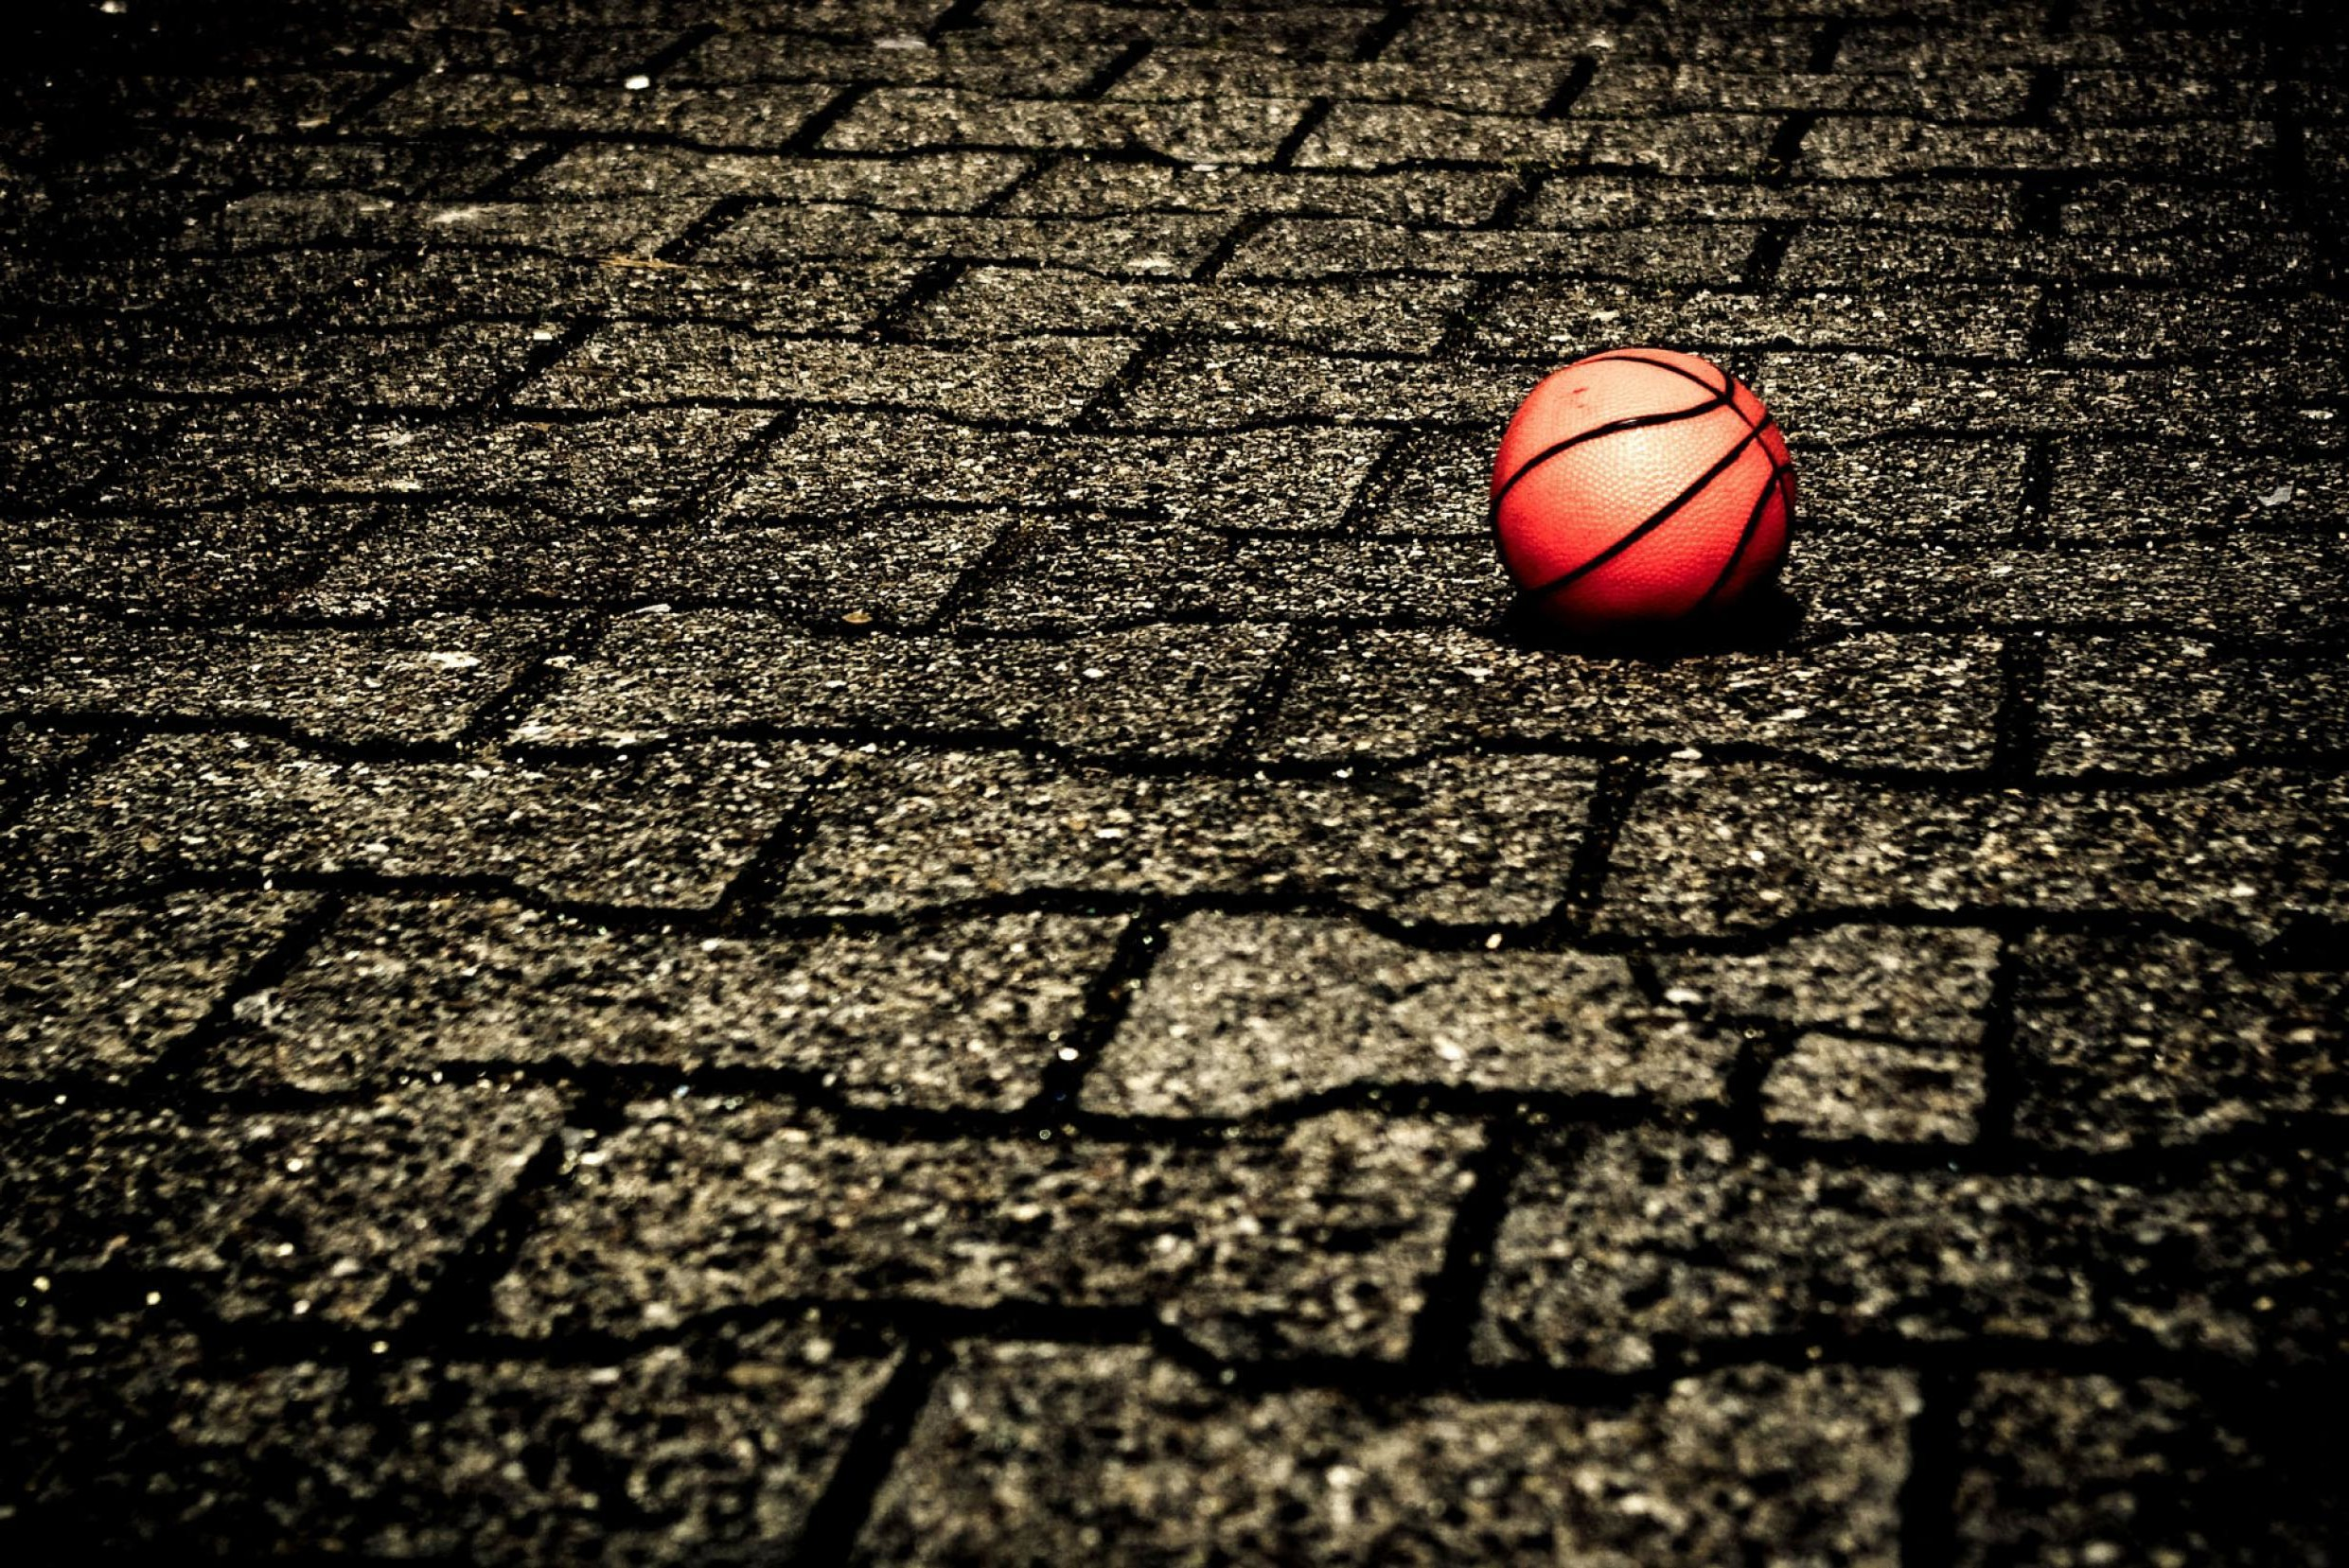 48 cool basketball wallpaper images on wallpapersafari - Cool basketball wallpapers hd ...